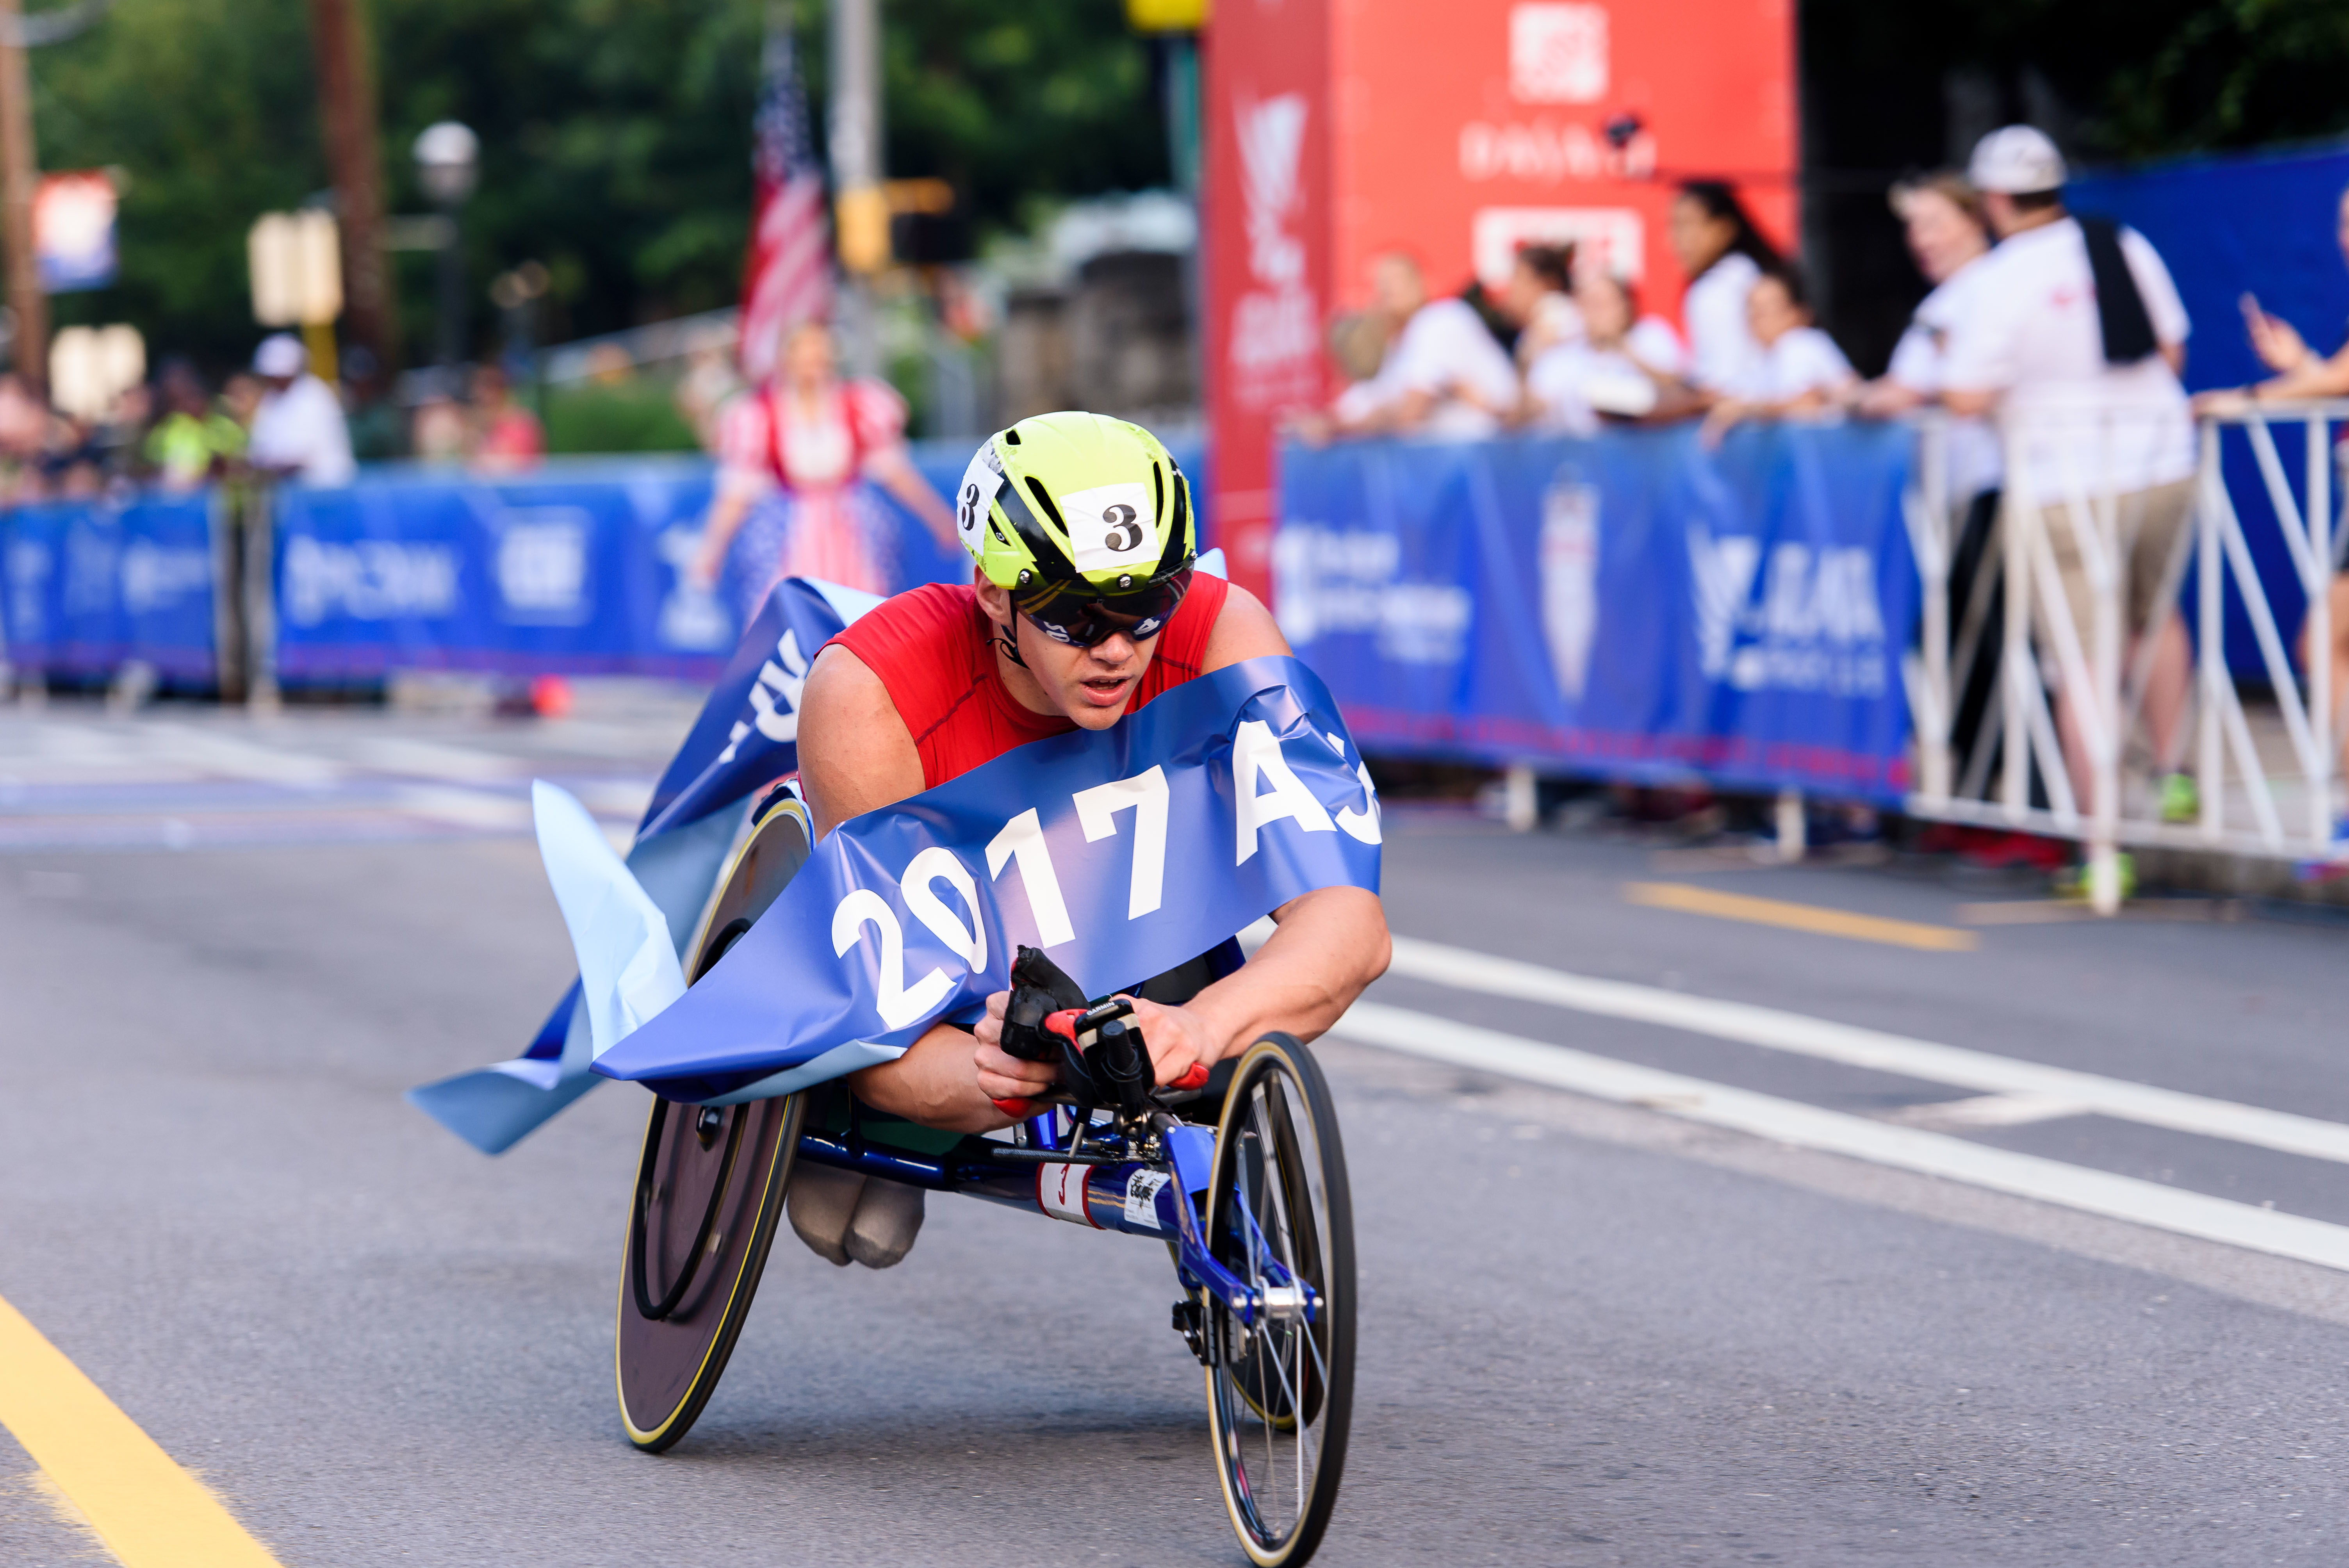 Romanchuk Returns to Defend AJC Peachtree Road Race Title